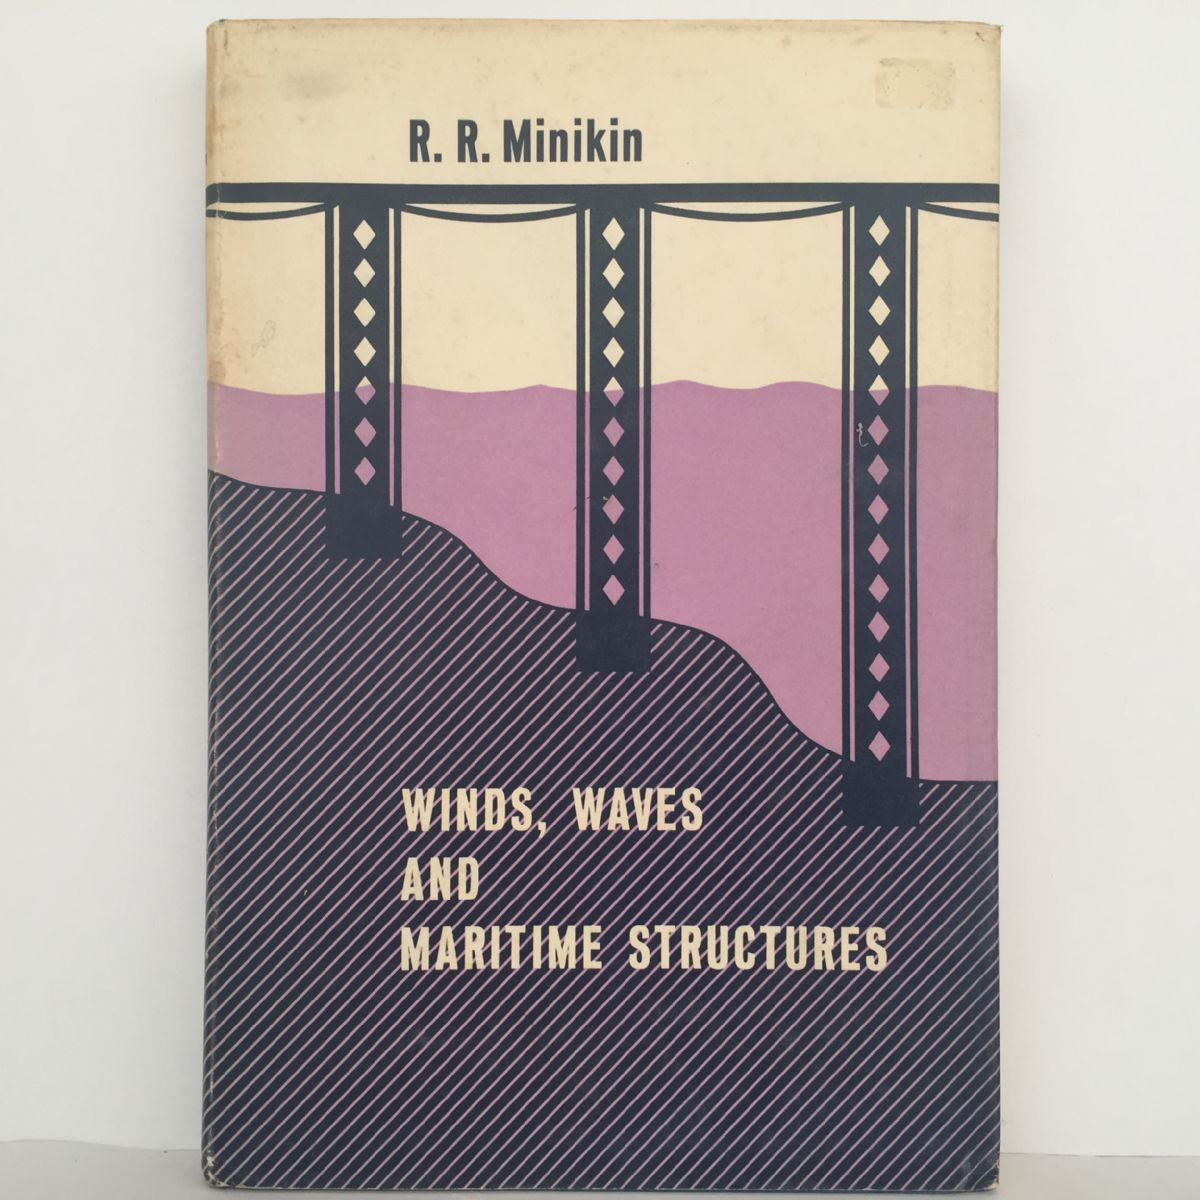 Winds, Waves and Maritime Structures